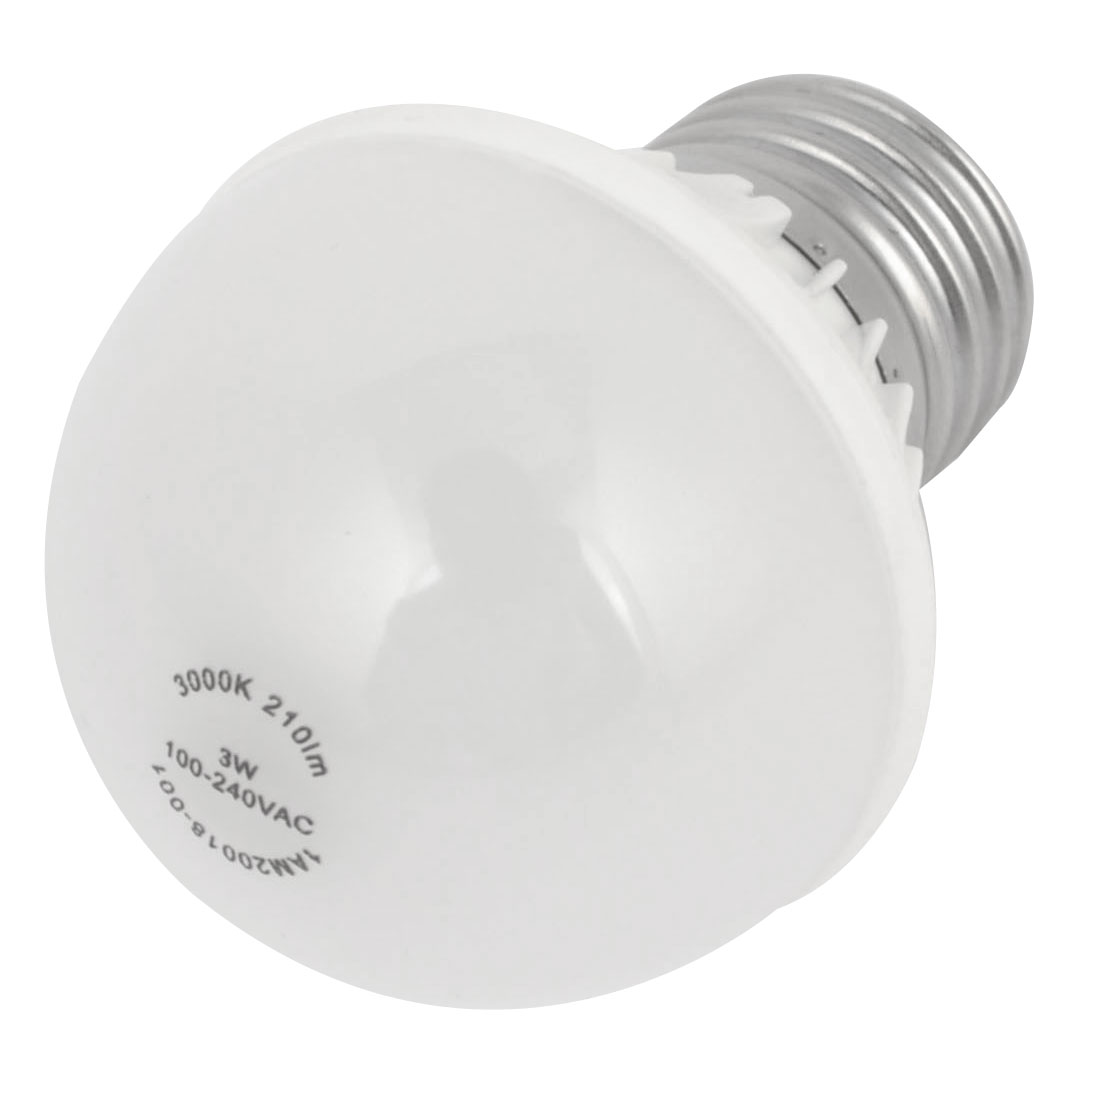 OU003-Bd AC 100-240V 3W 3000K E27 Warm White LED Globe Ball Light for Office